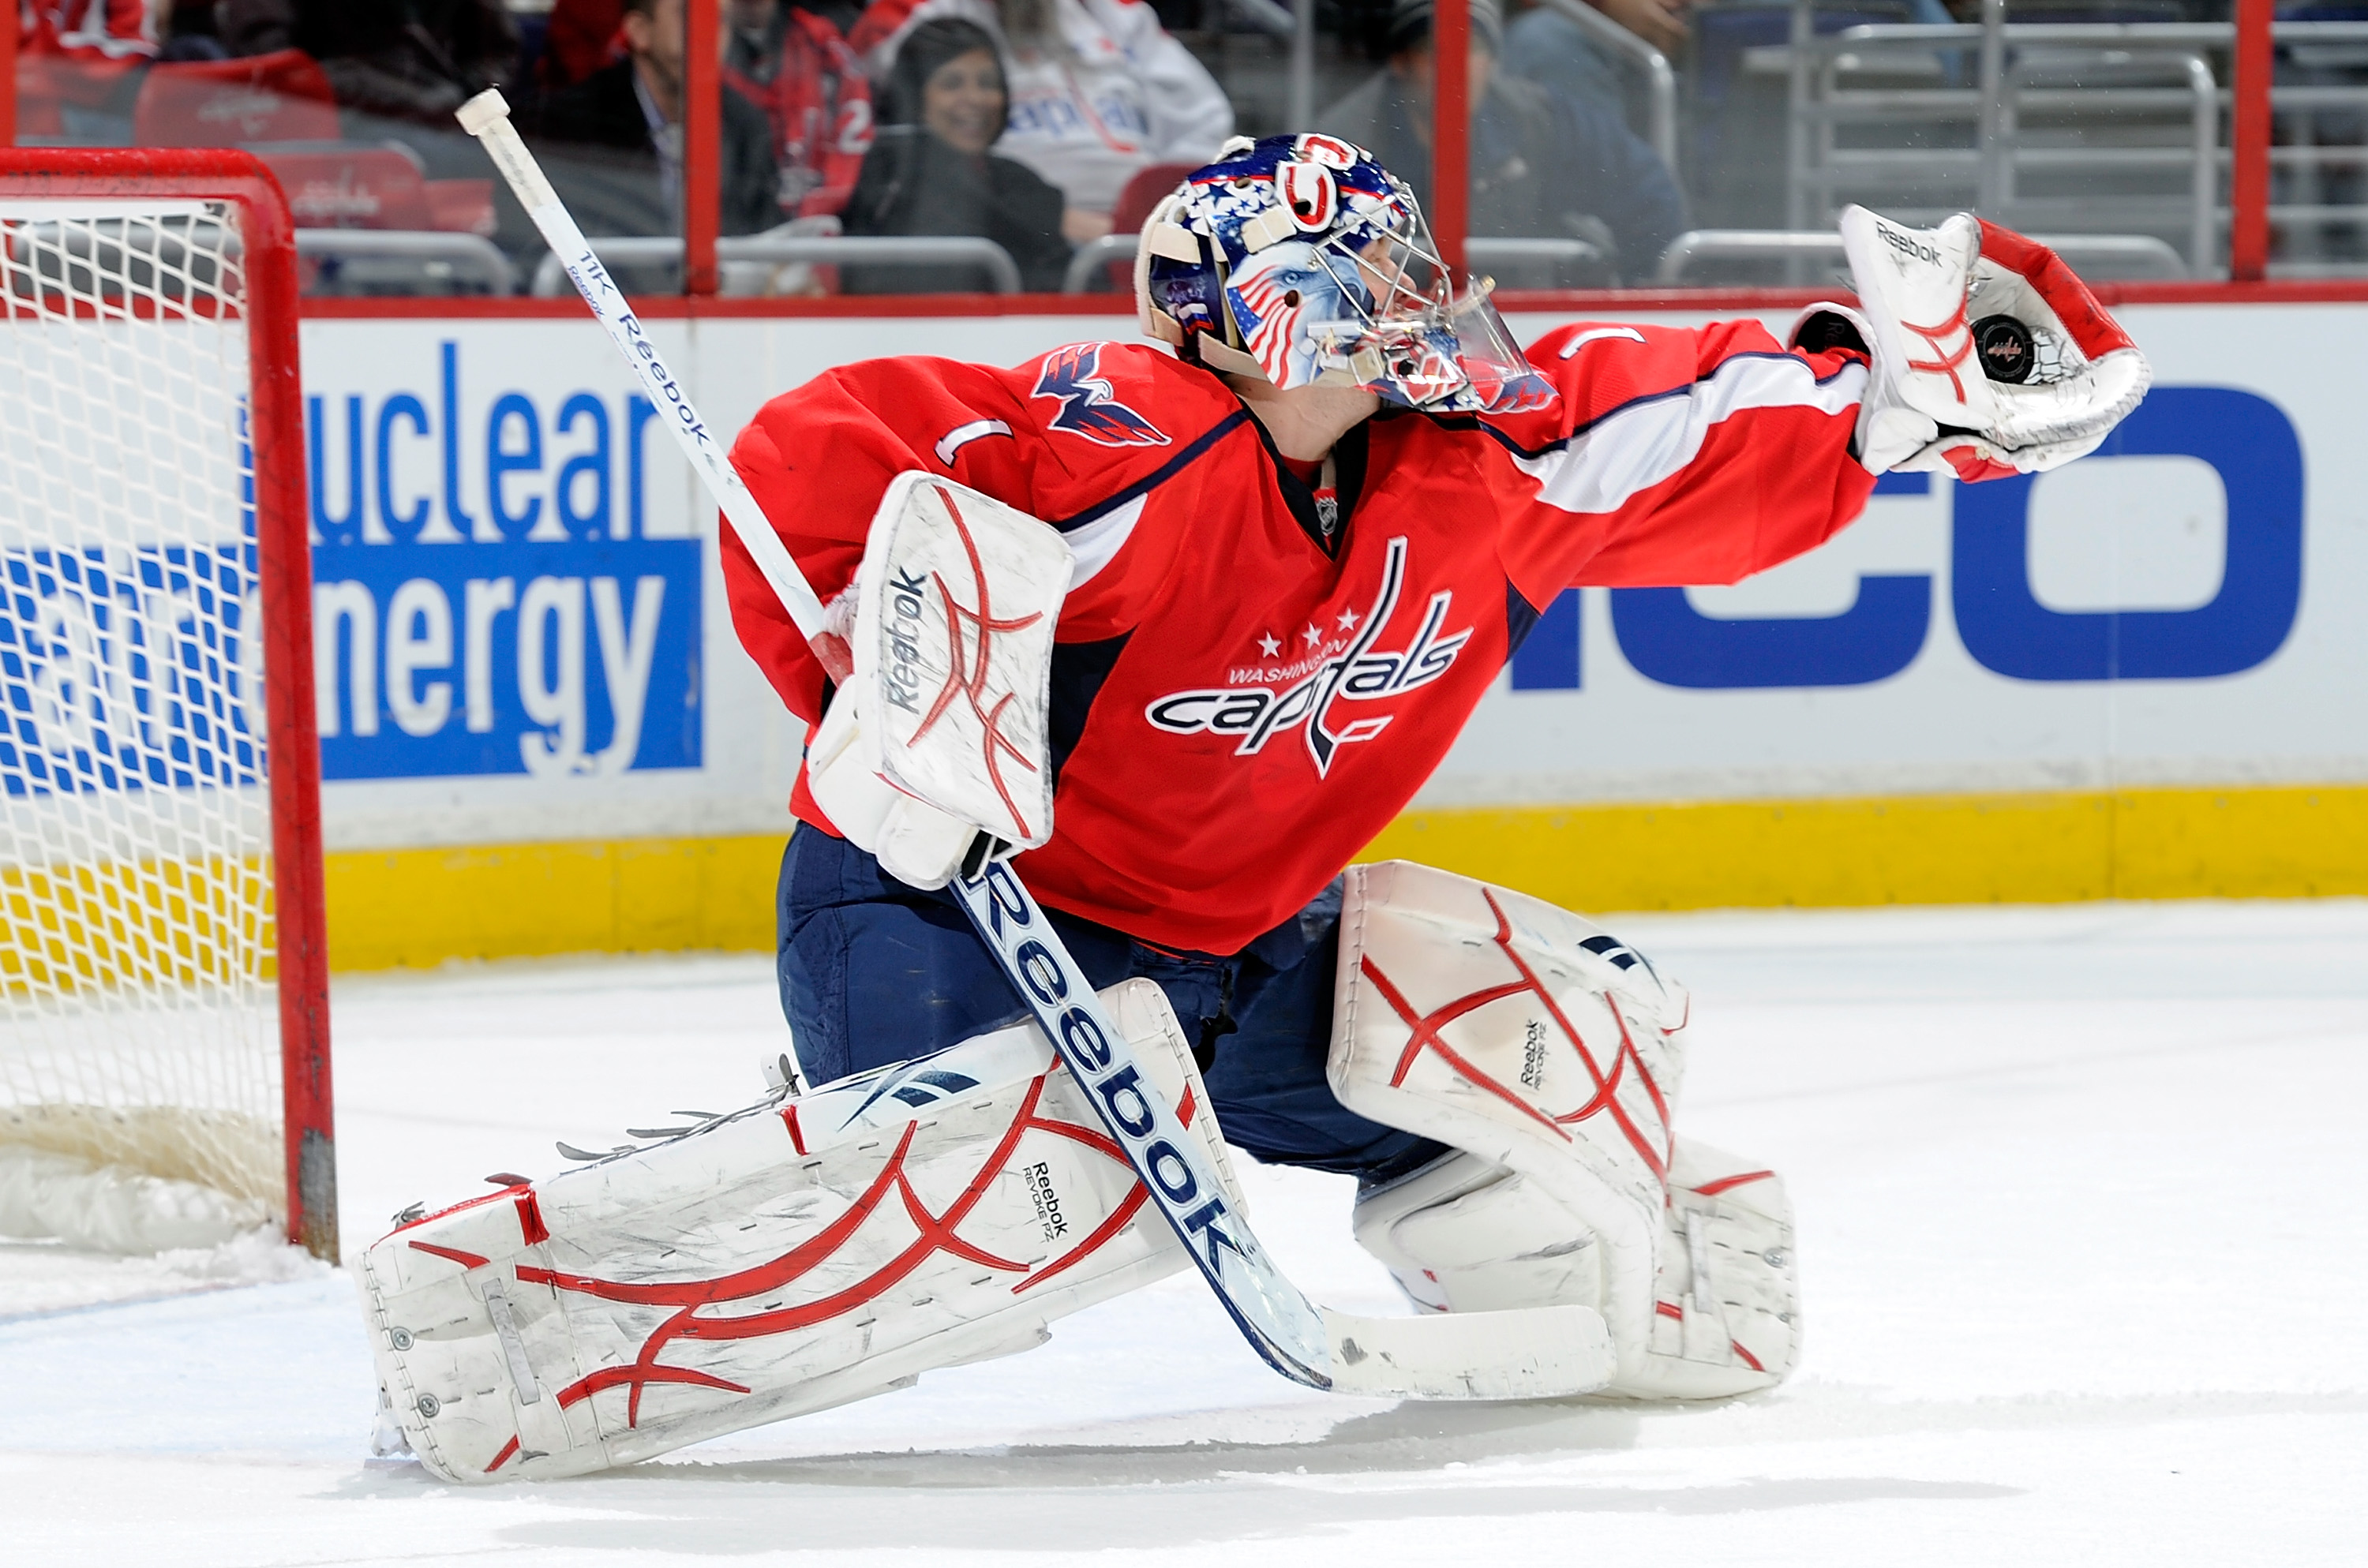 WASHINGTON, DC - DECEMBER 09:  Semyon Varlamov #1 of the Washington Capitals makes a save against the Florida Panthers at the Verizon Center on December 9, 2010 in Washington, DC.  (Photo by Greg Fiume/Getty Images)